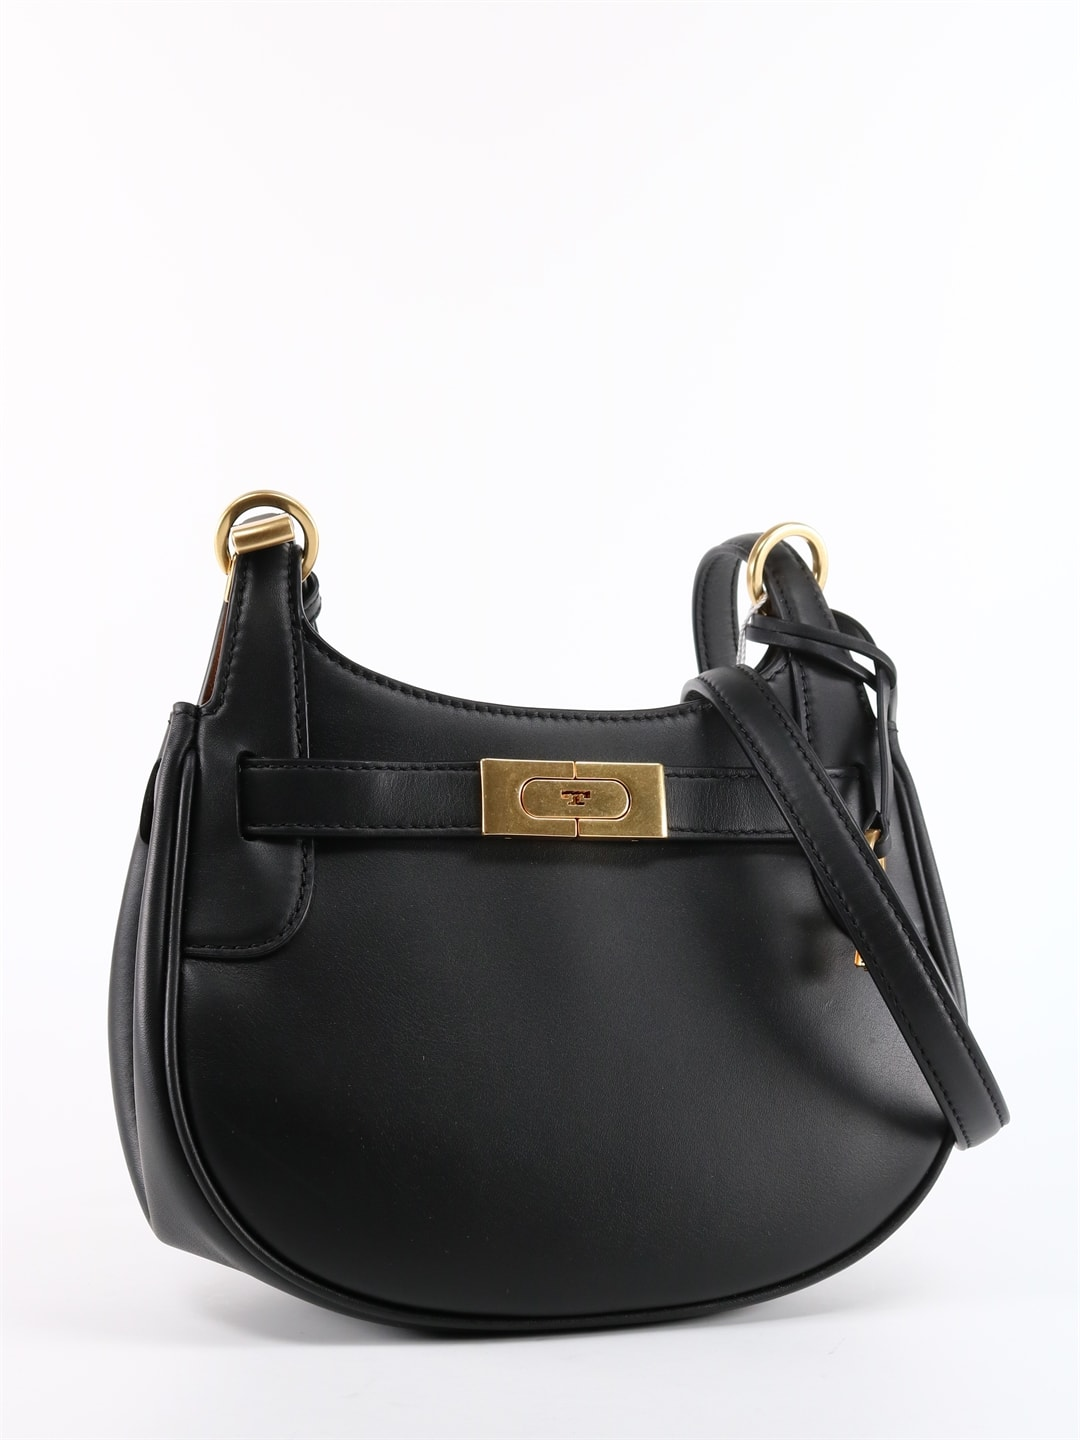 Tory Burch SADDLE BAG LEE RADZIWILL SMALL